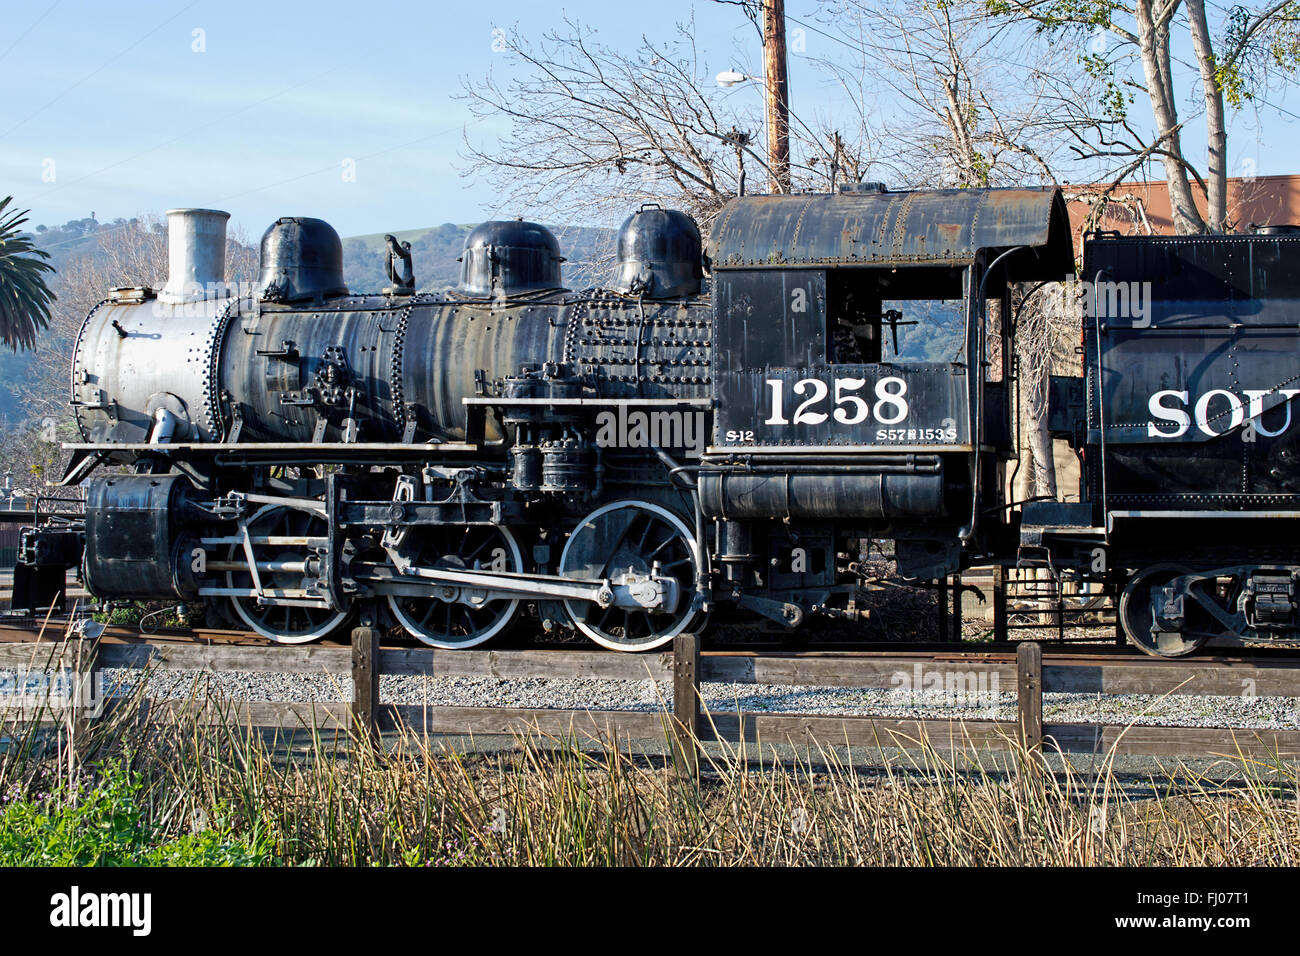 SP 1258 0-6-0 Steam Locomotive on display in Martinez, California